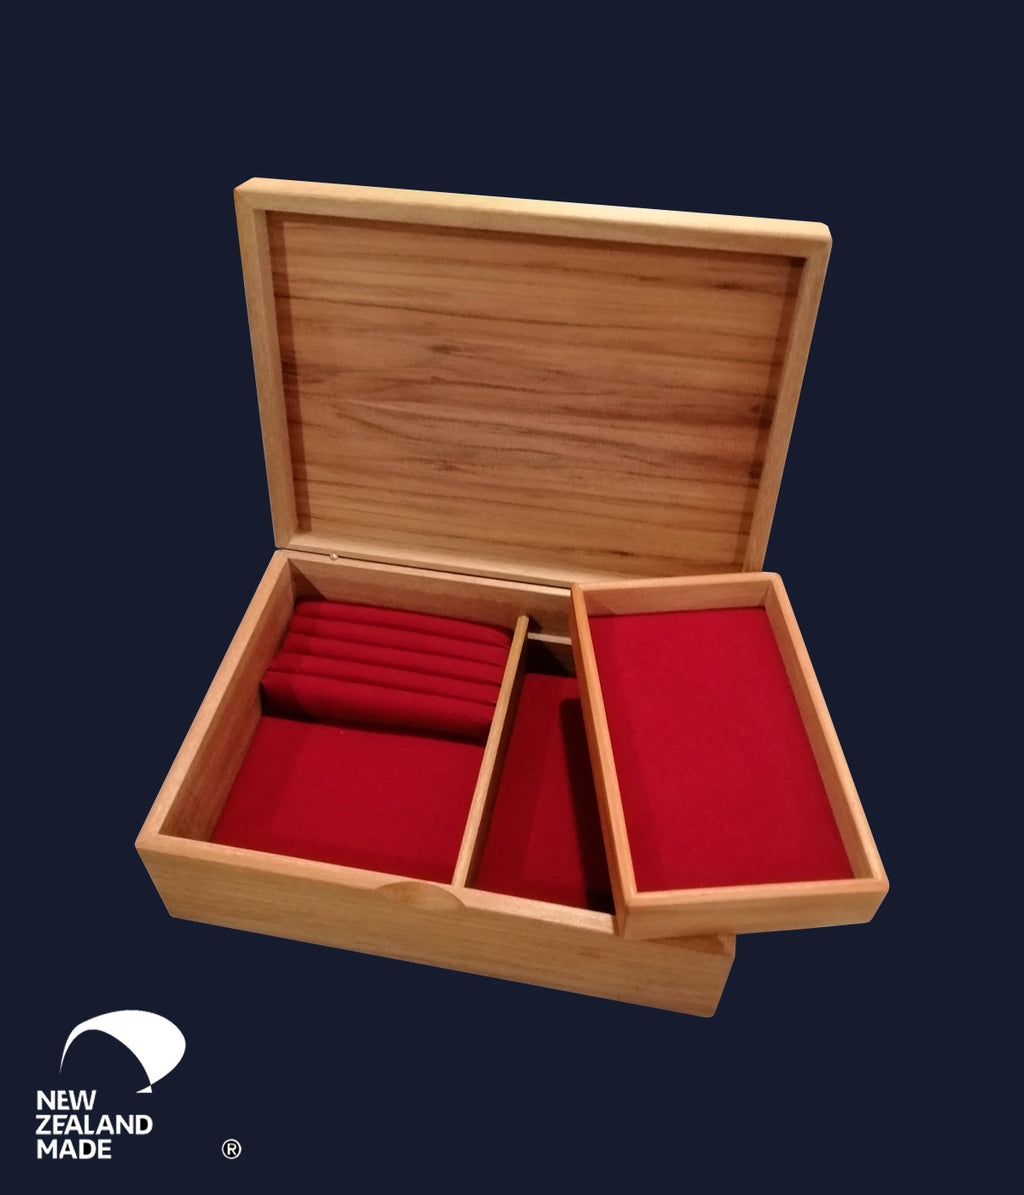 Rimu Jewellery Box Medium With Tray